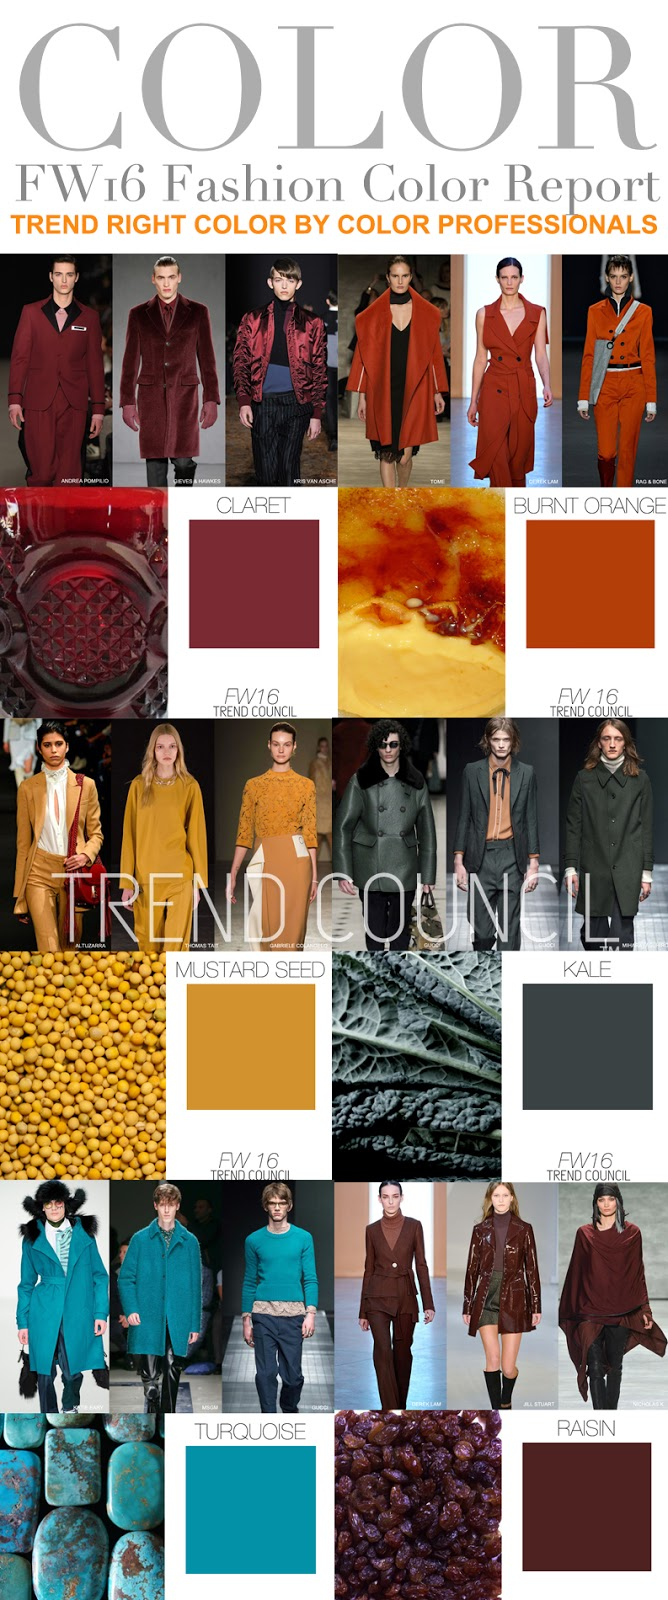 Fashion vignette for Fall clothing colors 2016